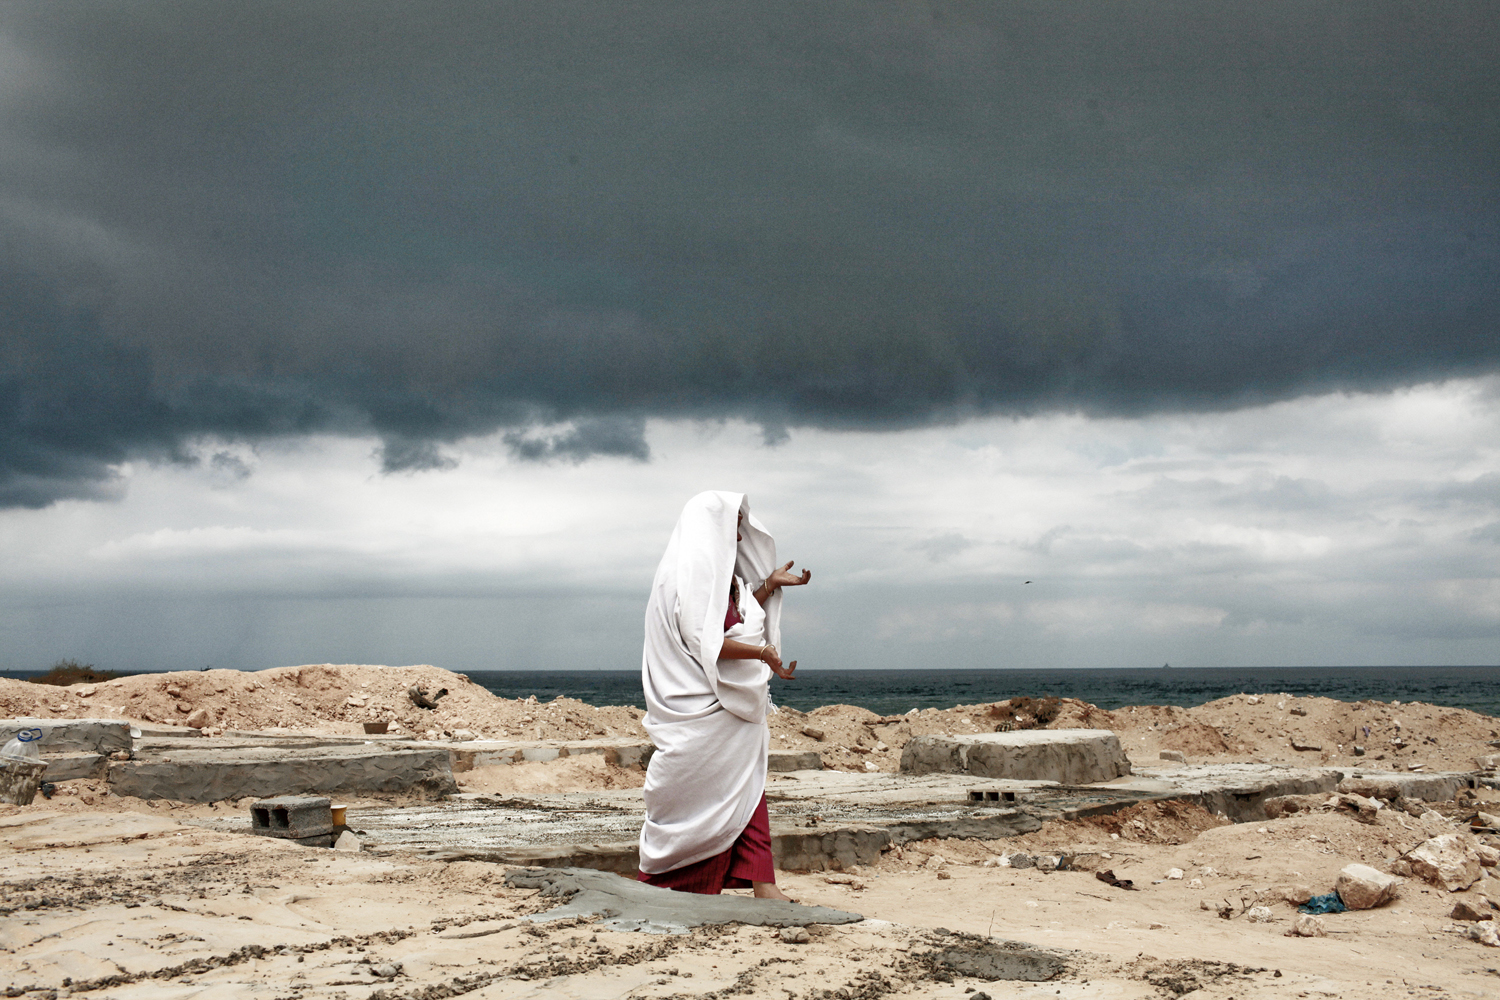 September 9, 2011. Under an ominous sky, Eyadea Elspaie visits the gravesite of his son, Tareq Elspaie, who was killed by Gafhafi loyalists last month, at a cemetery in Tripoli. Libyan rebels launched attacks on the loyalist holdouts of Bani Walid and Surt, and Interpol issued an arrest warrant for Col. Moammar Gadhafi.